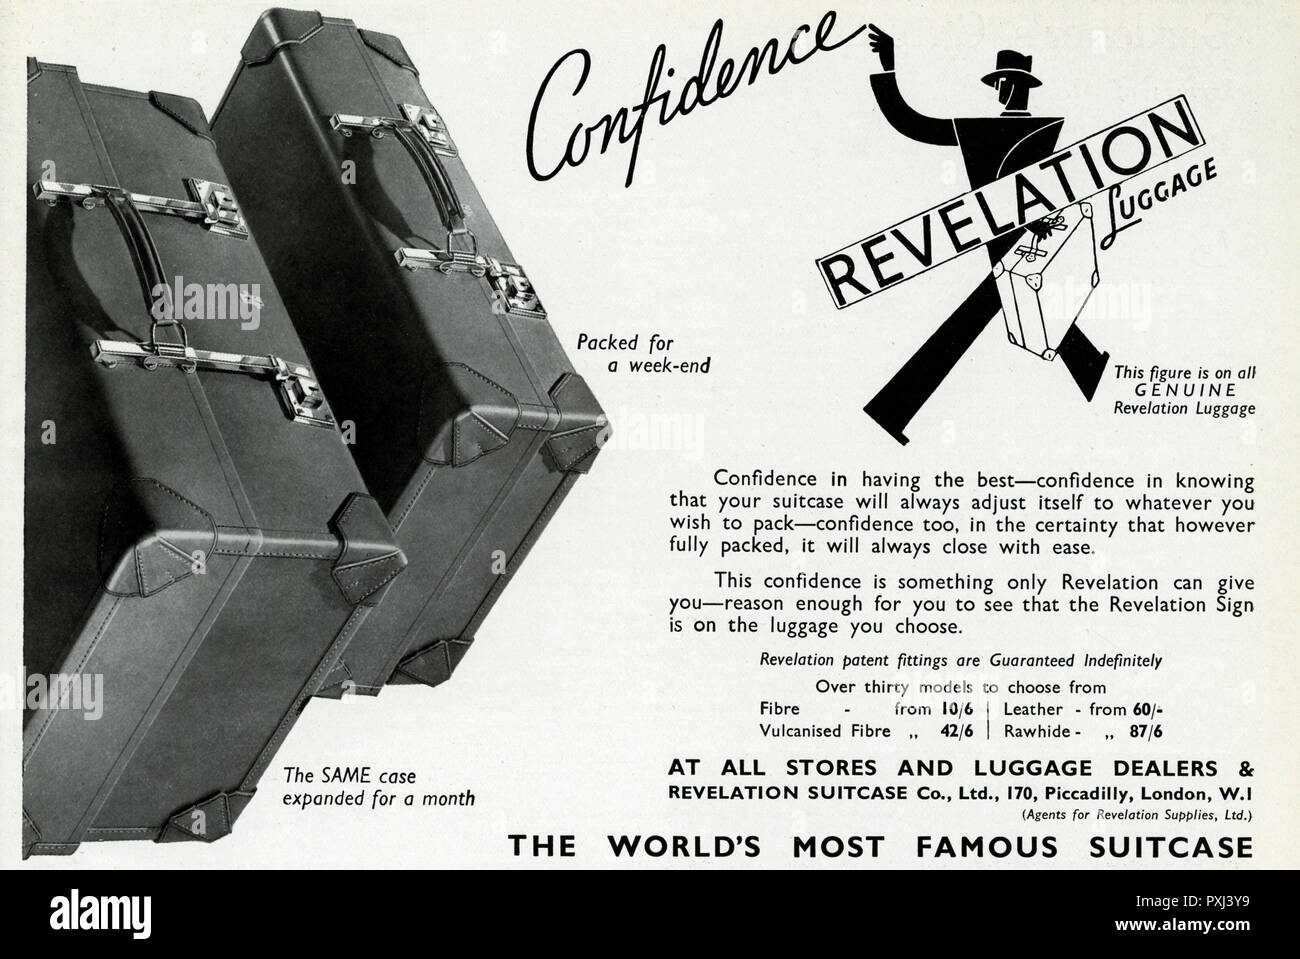 Expanding suitcases. Confidence in having the best-confidence in knowing that your suitcase will always adjust itself to whatever you wish to pack-confidence too, in the certainty that however fully packed, it will always close with ease.     Date: 1939 - Stock Image